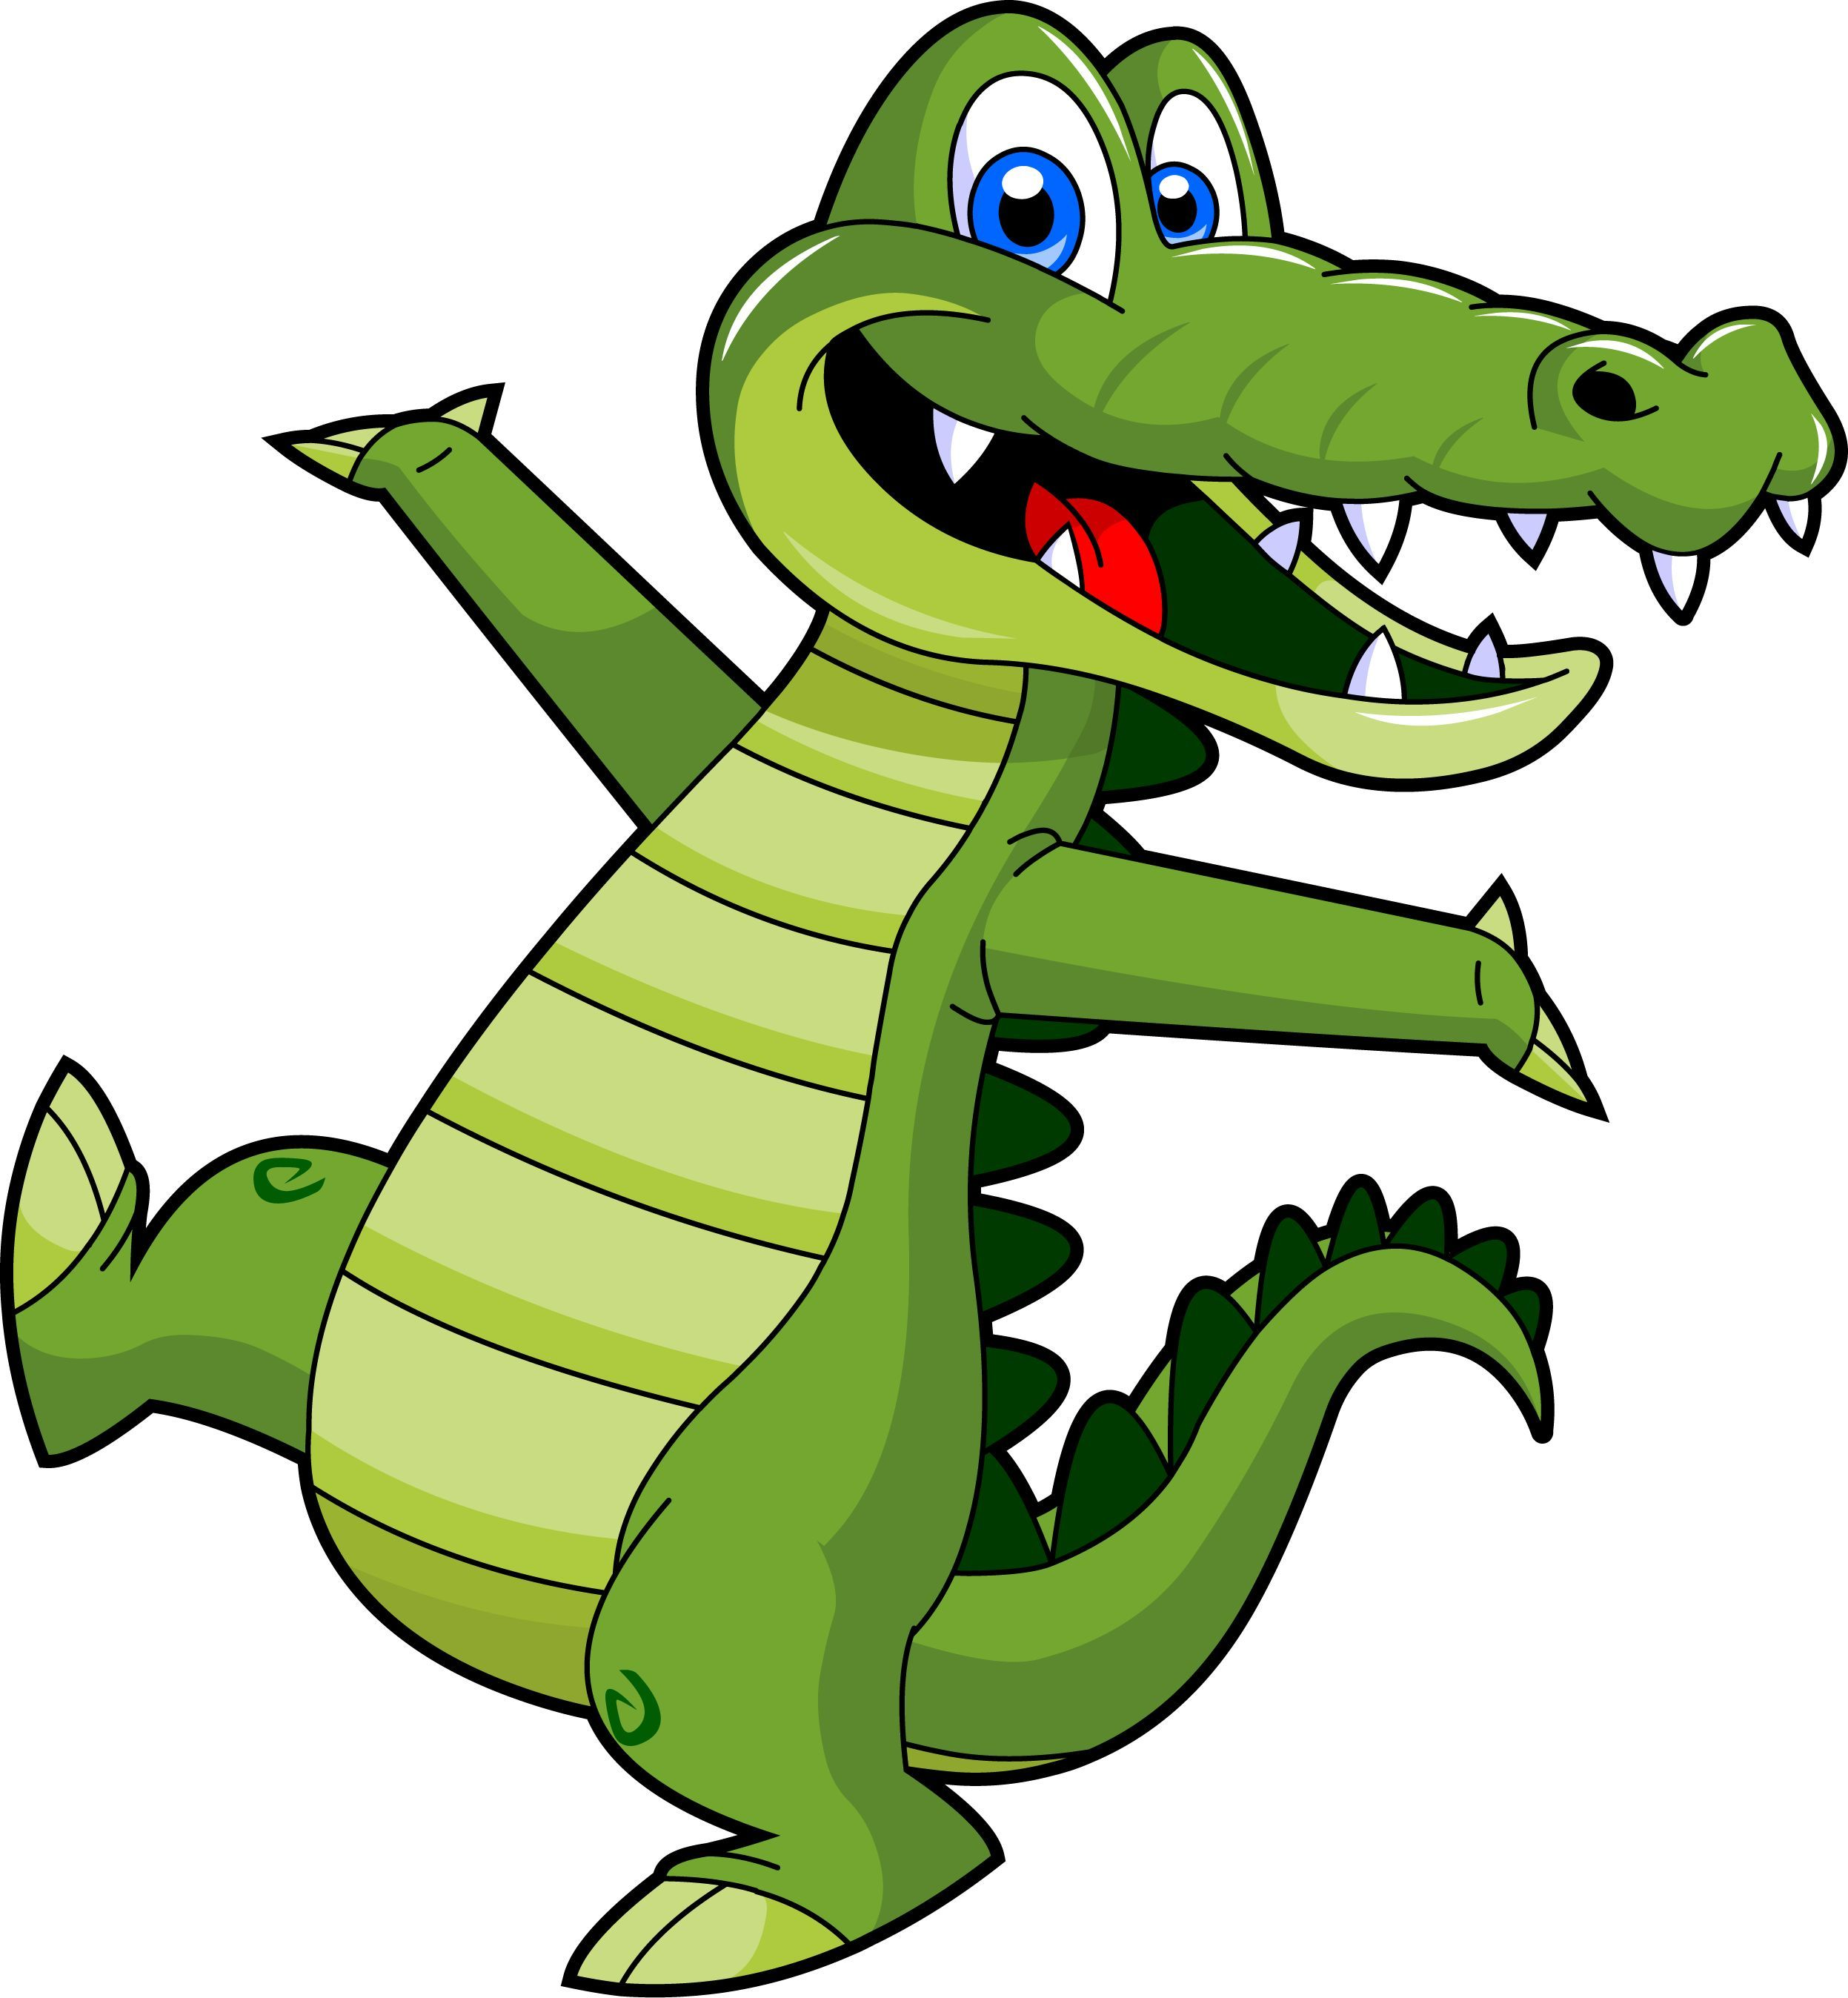 cute baby alligator clipart free clipart images 2 clipart rh pinterest com Alligator Clip Art Alligator Head Clip Art